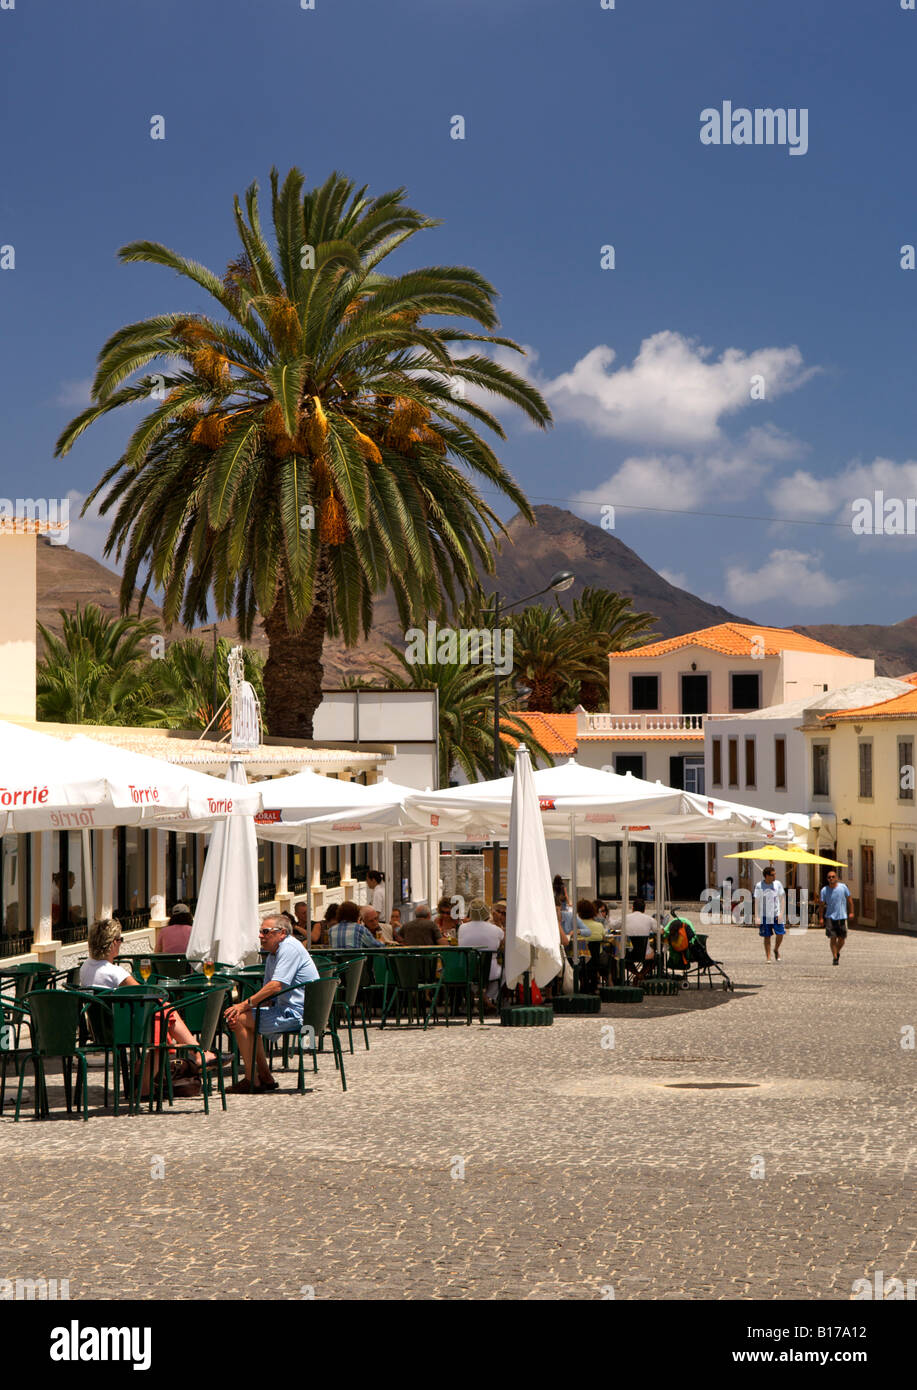 The town of Vila Baleira on the Portuguese Atlantic island of Porto Santo. - Stock Image